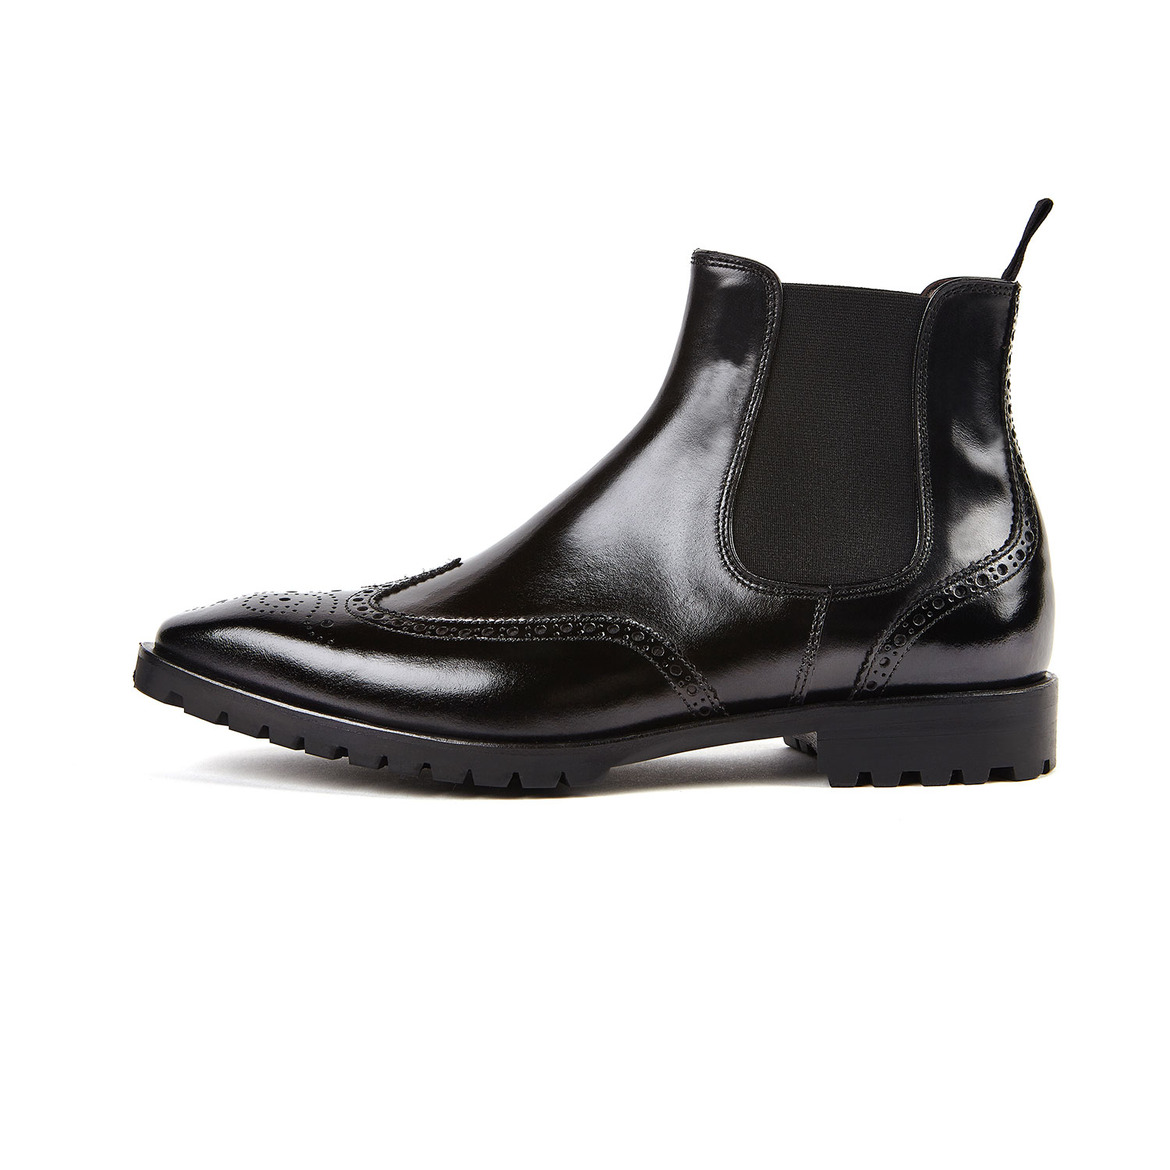 MIRAVO 7 [Premium Wing-tip Chelsea Boots] (Customizable)